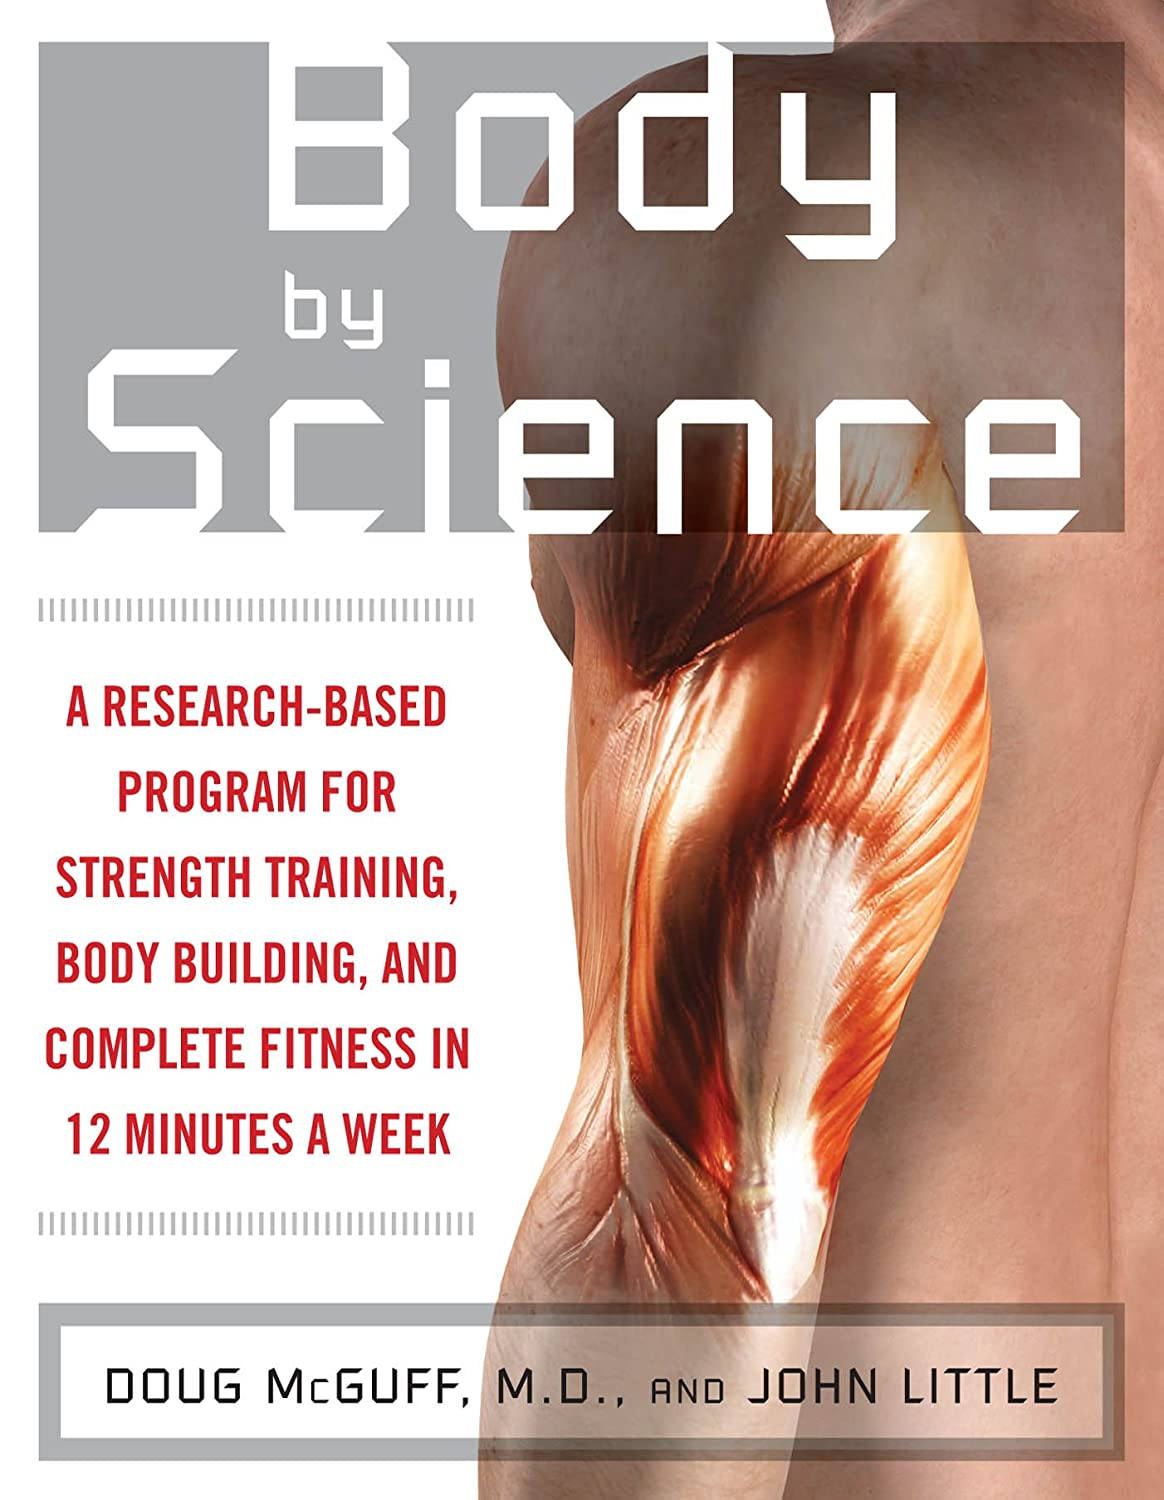 A Research Based Program for Strength Training, Body Building, and Complete Fitness in 12 Minutes a Week - John Little & Doug McGuff